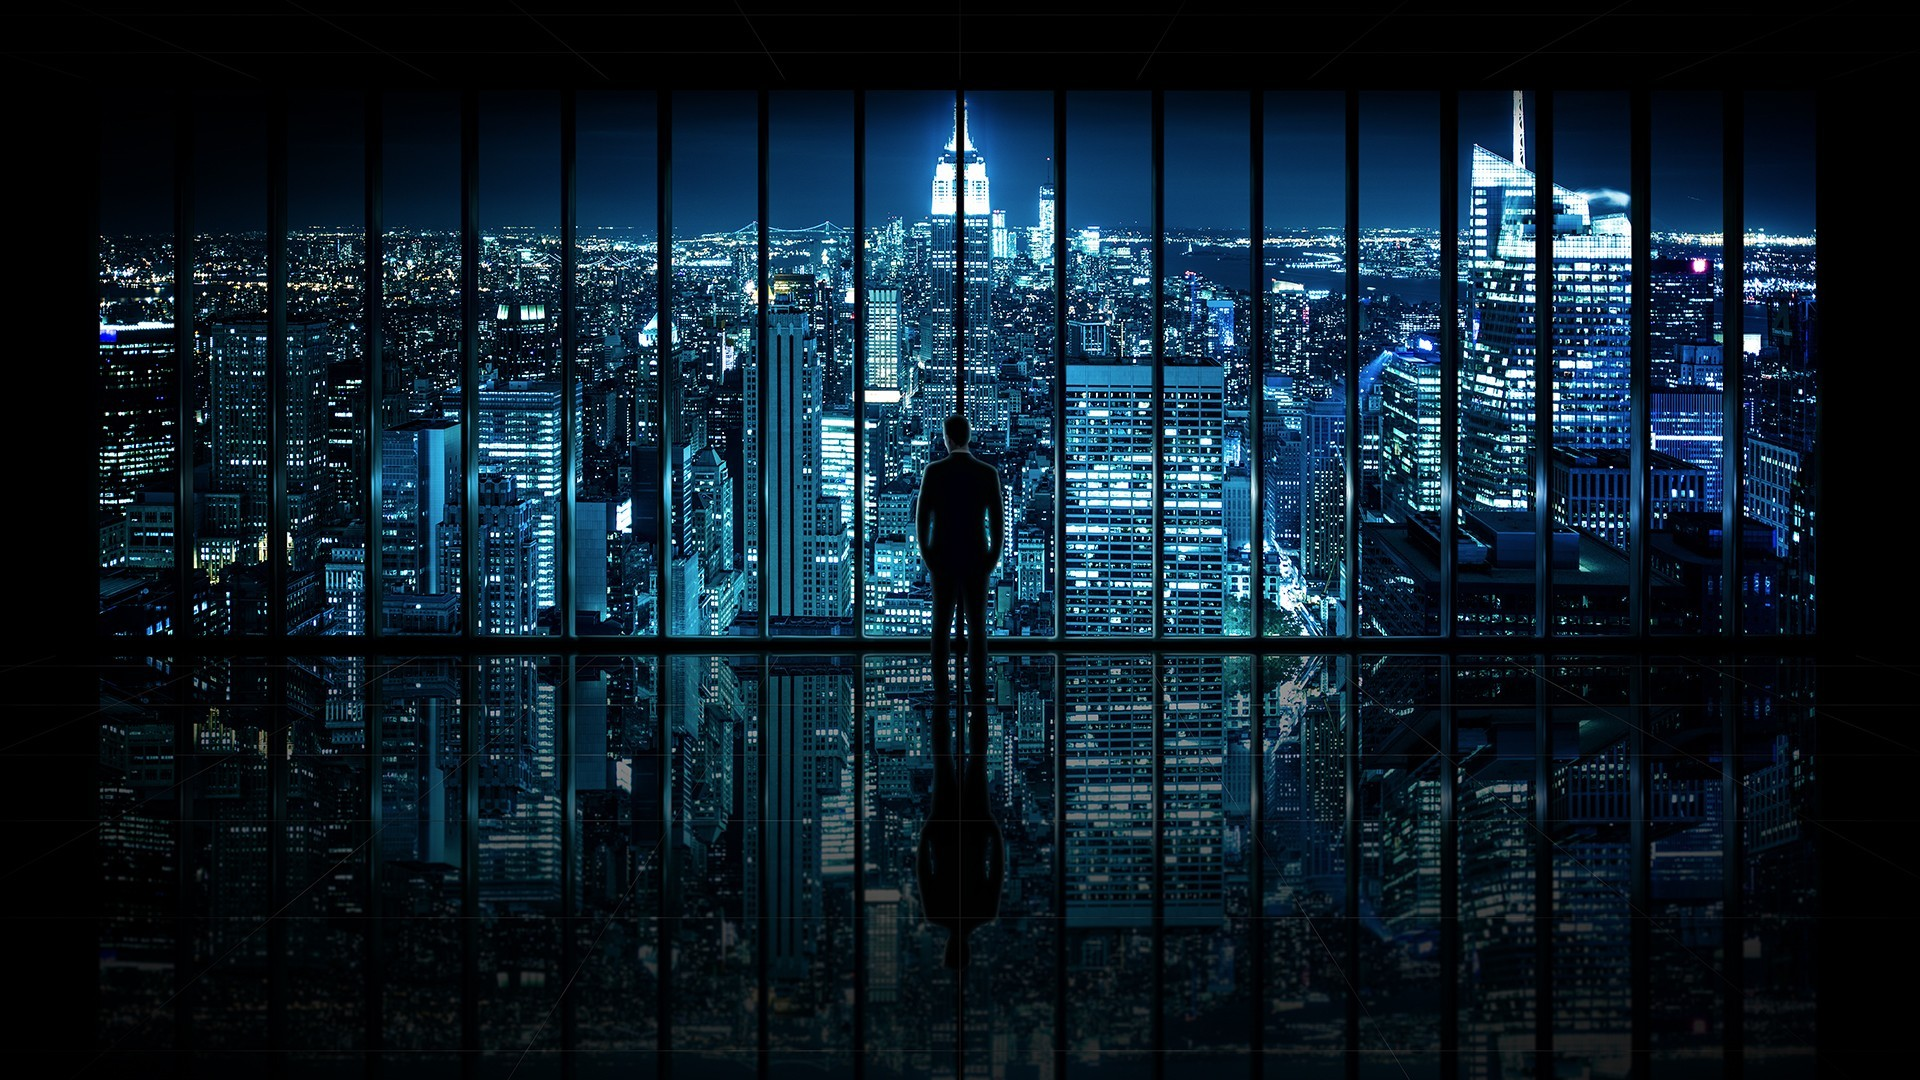 Fifty Shades of Grey, Movie, Night, Architecture wallpaper thumb